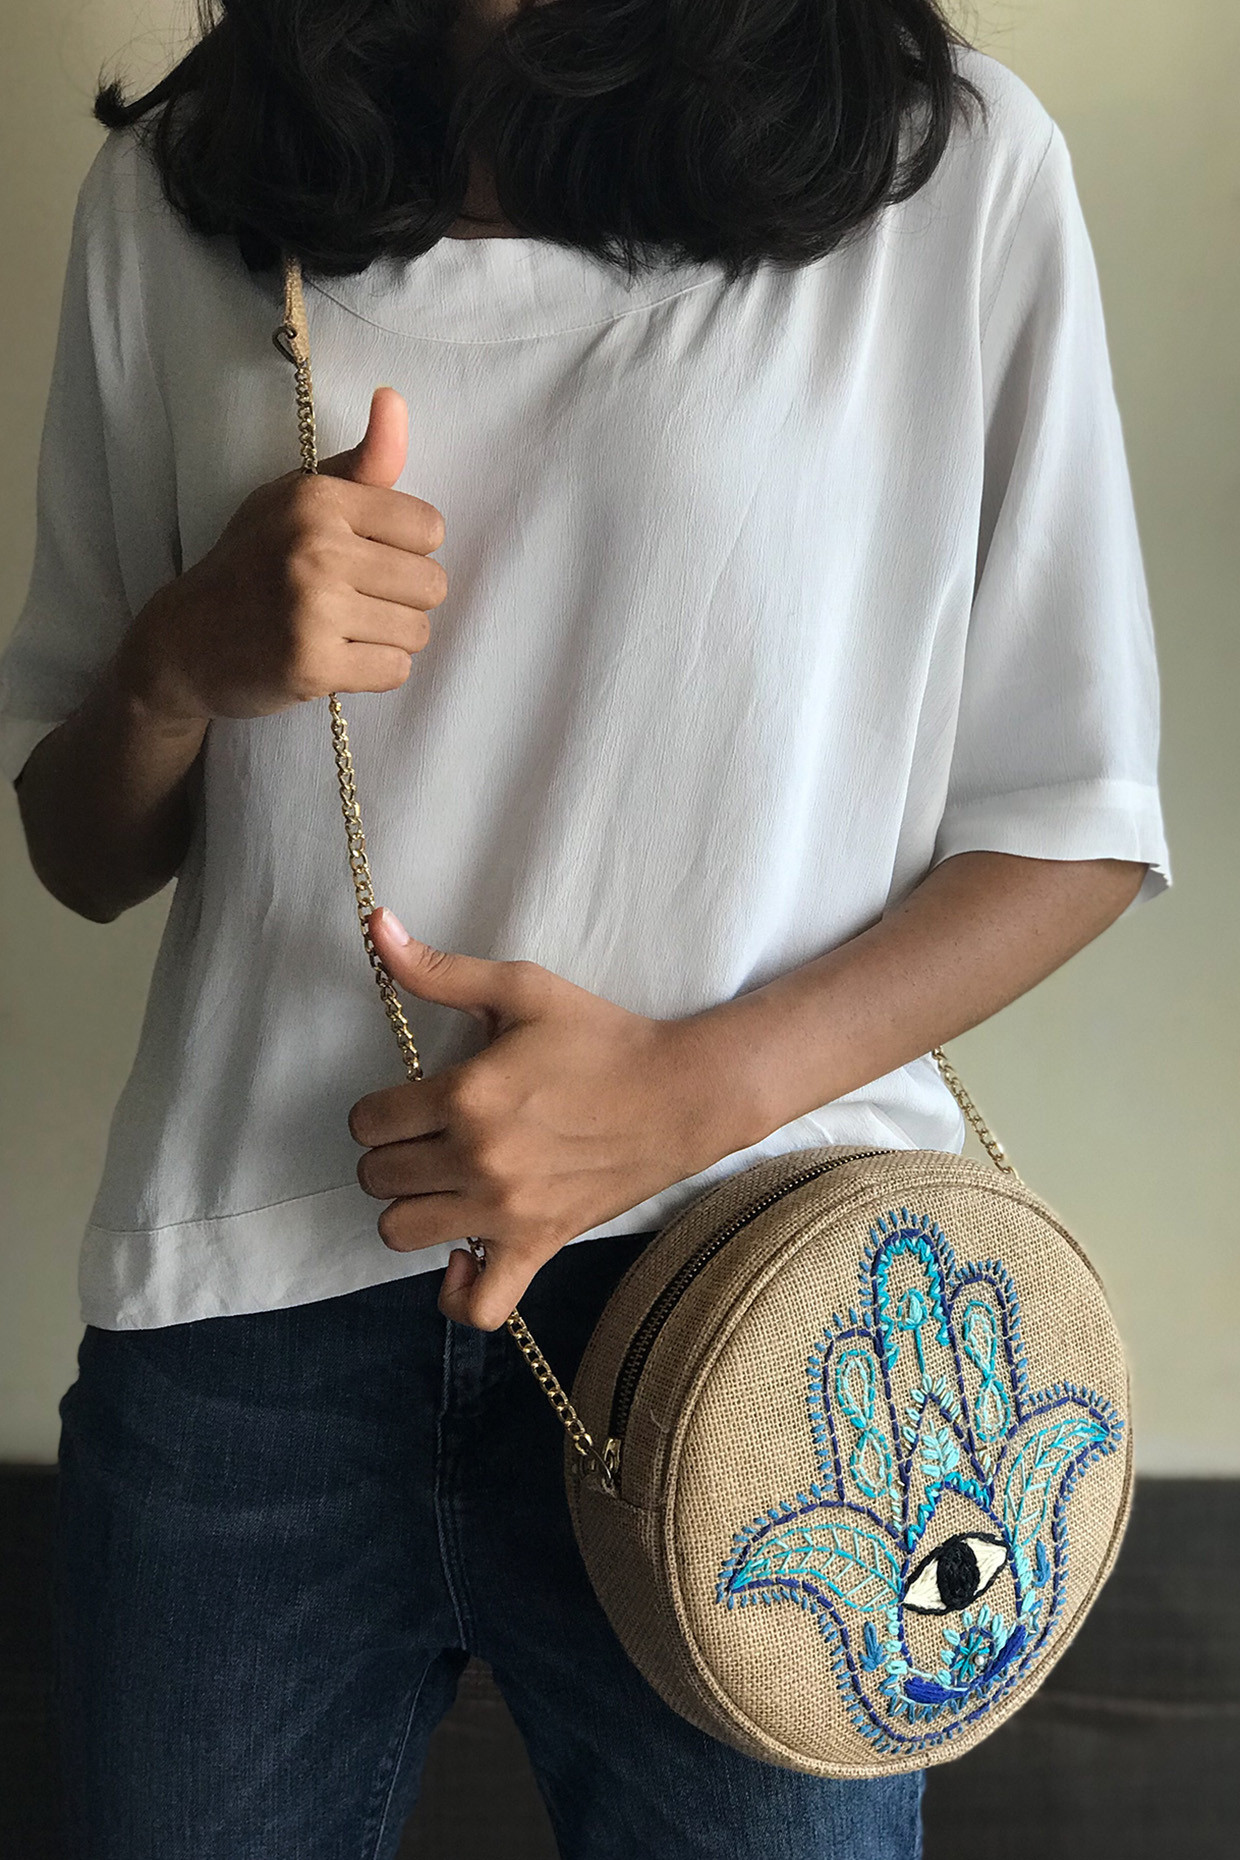 Handcrafted Jute Sling Bag With Embroidered Hamsa Hand by Dhaga Handicraft